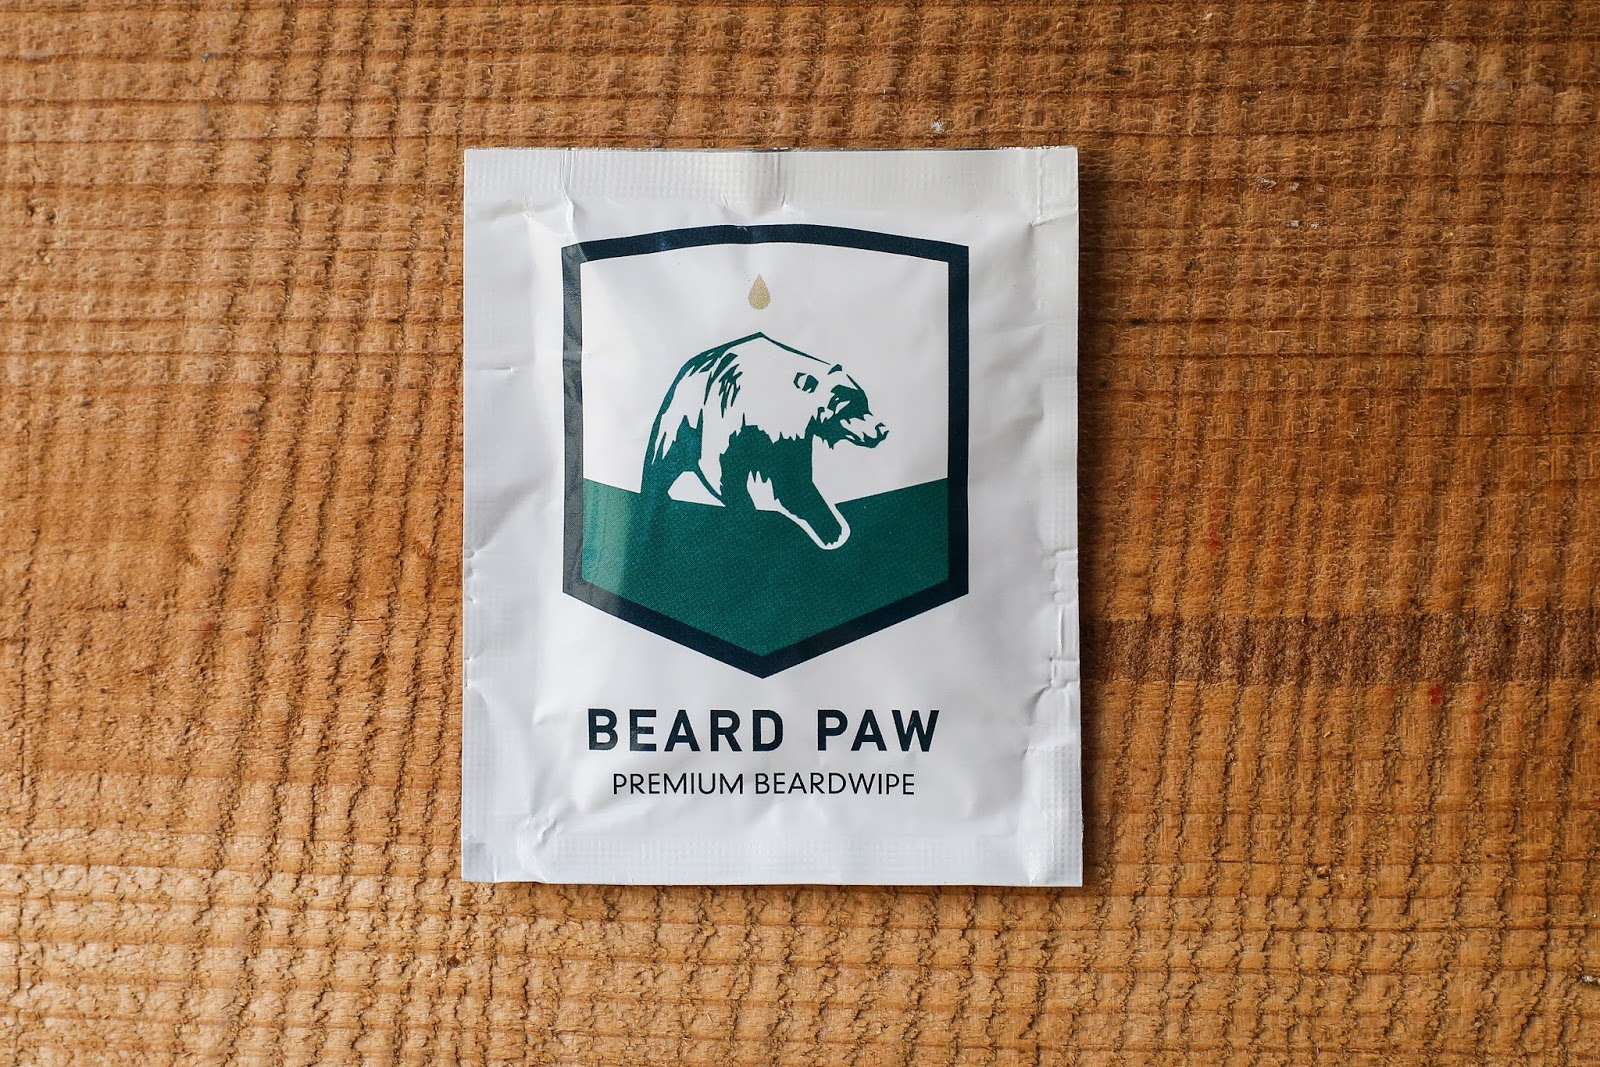 A sachet of Beard Paw wipes